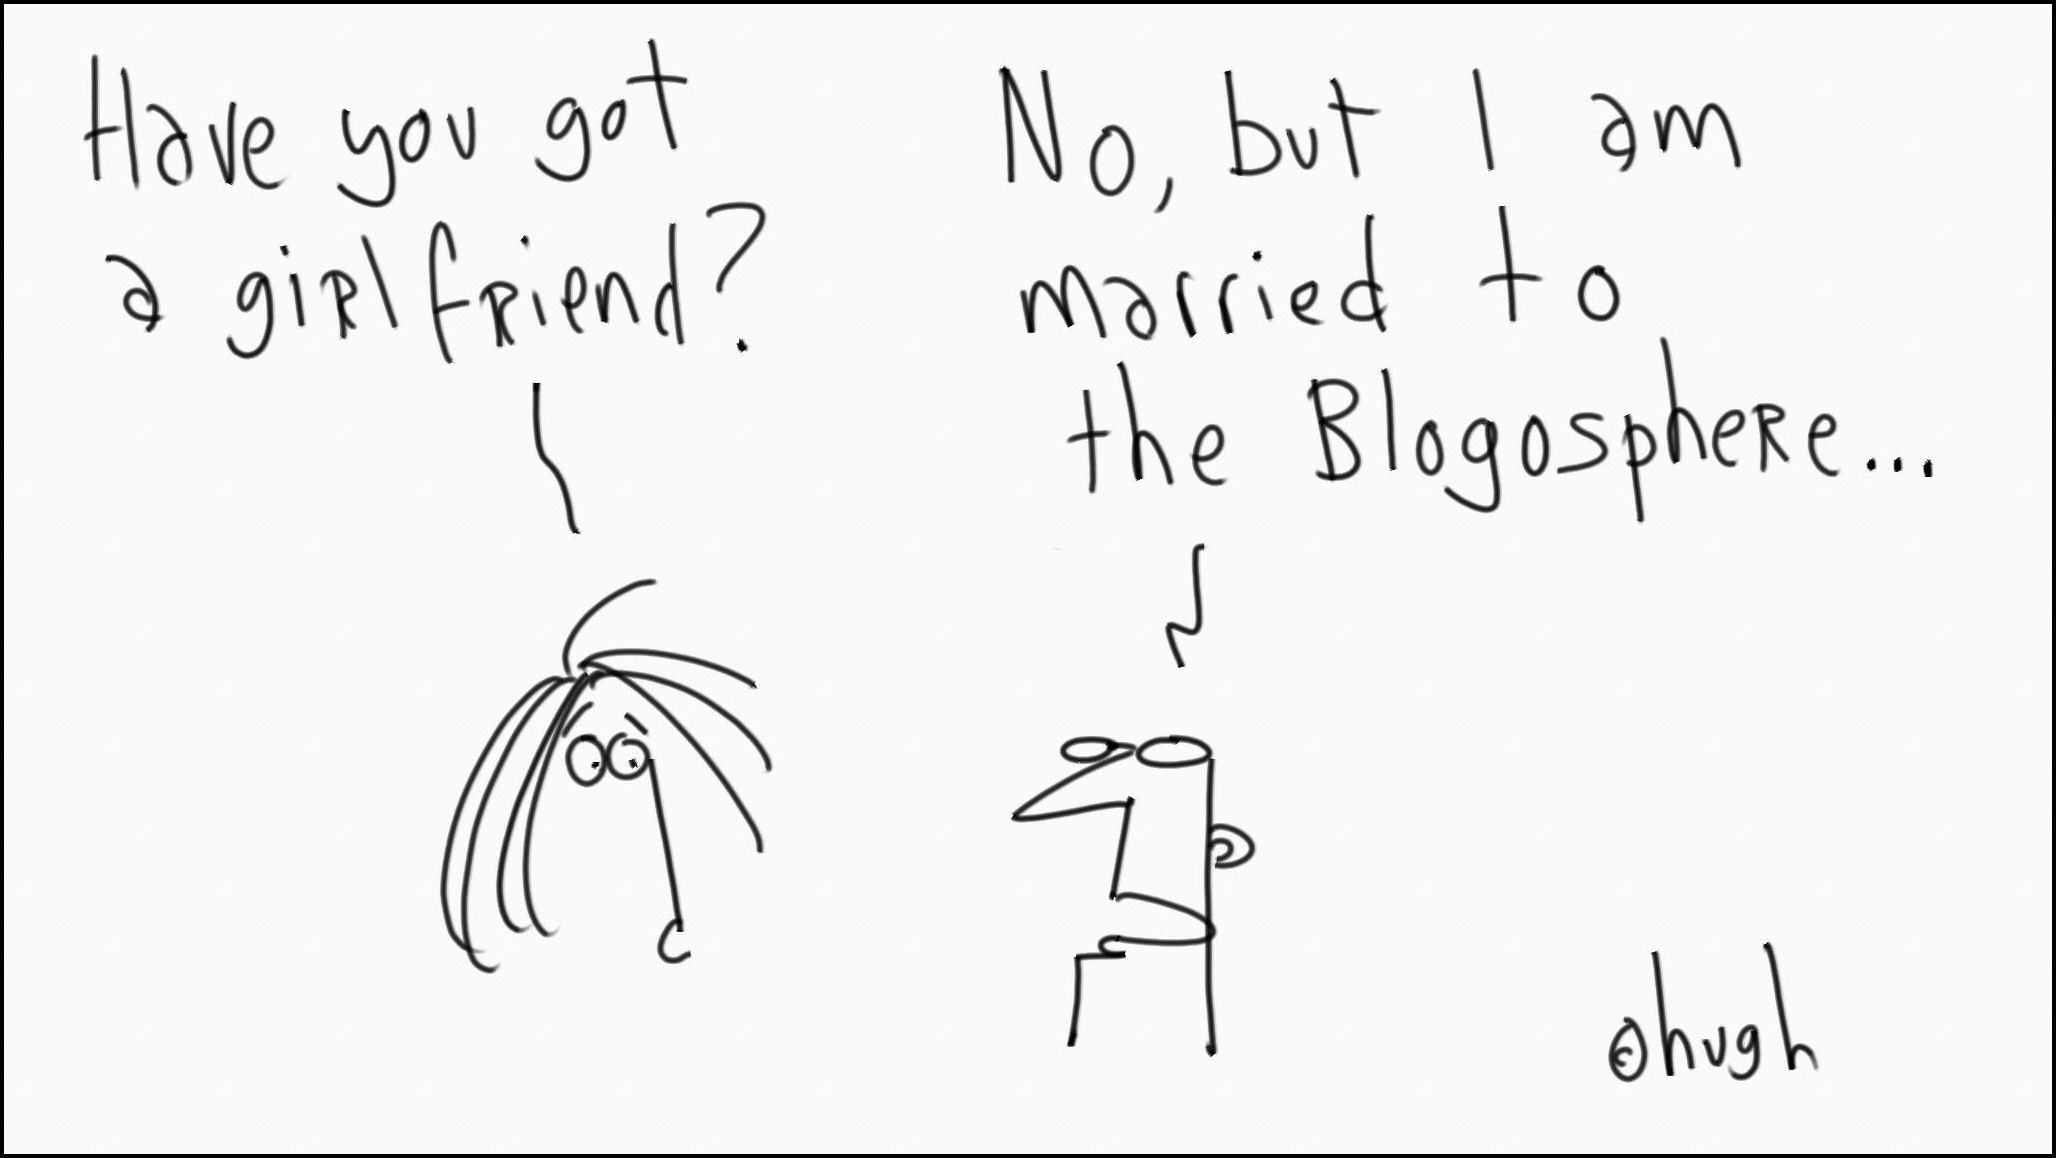 Dating in the blogosphere